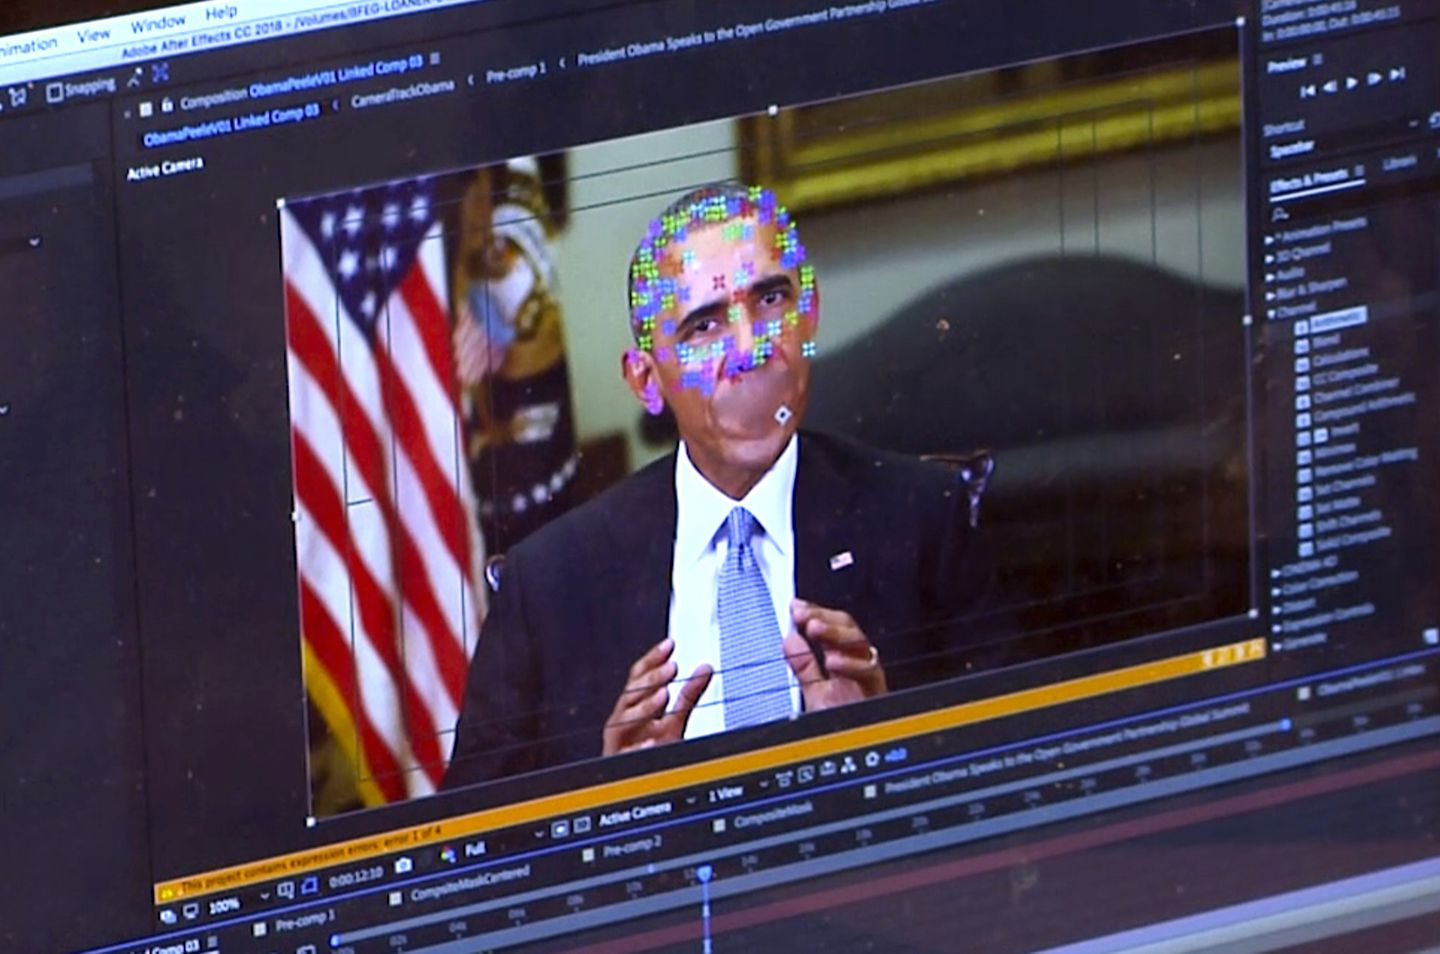 Barack Obama Porn deepfakes are getting better. should we be worried? - the